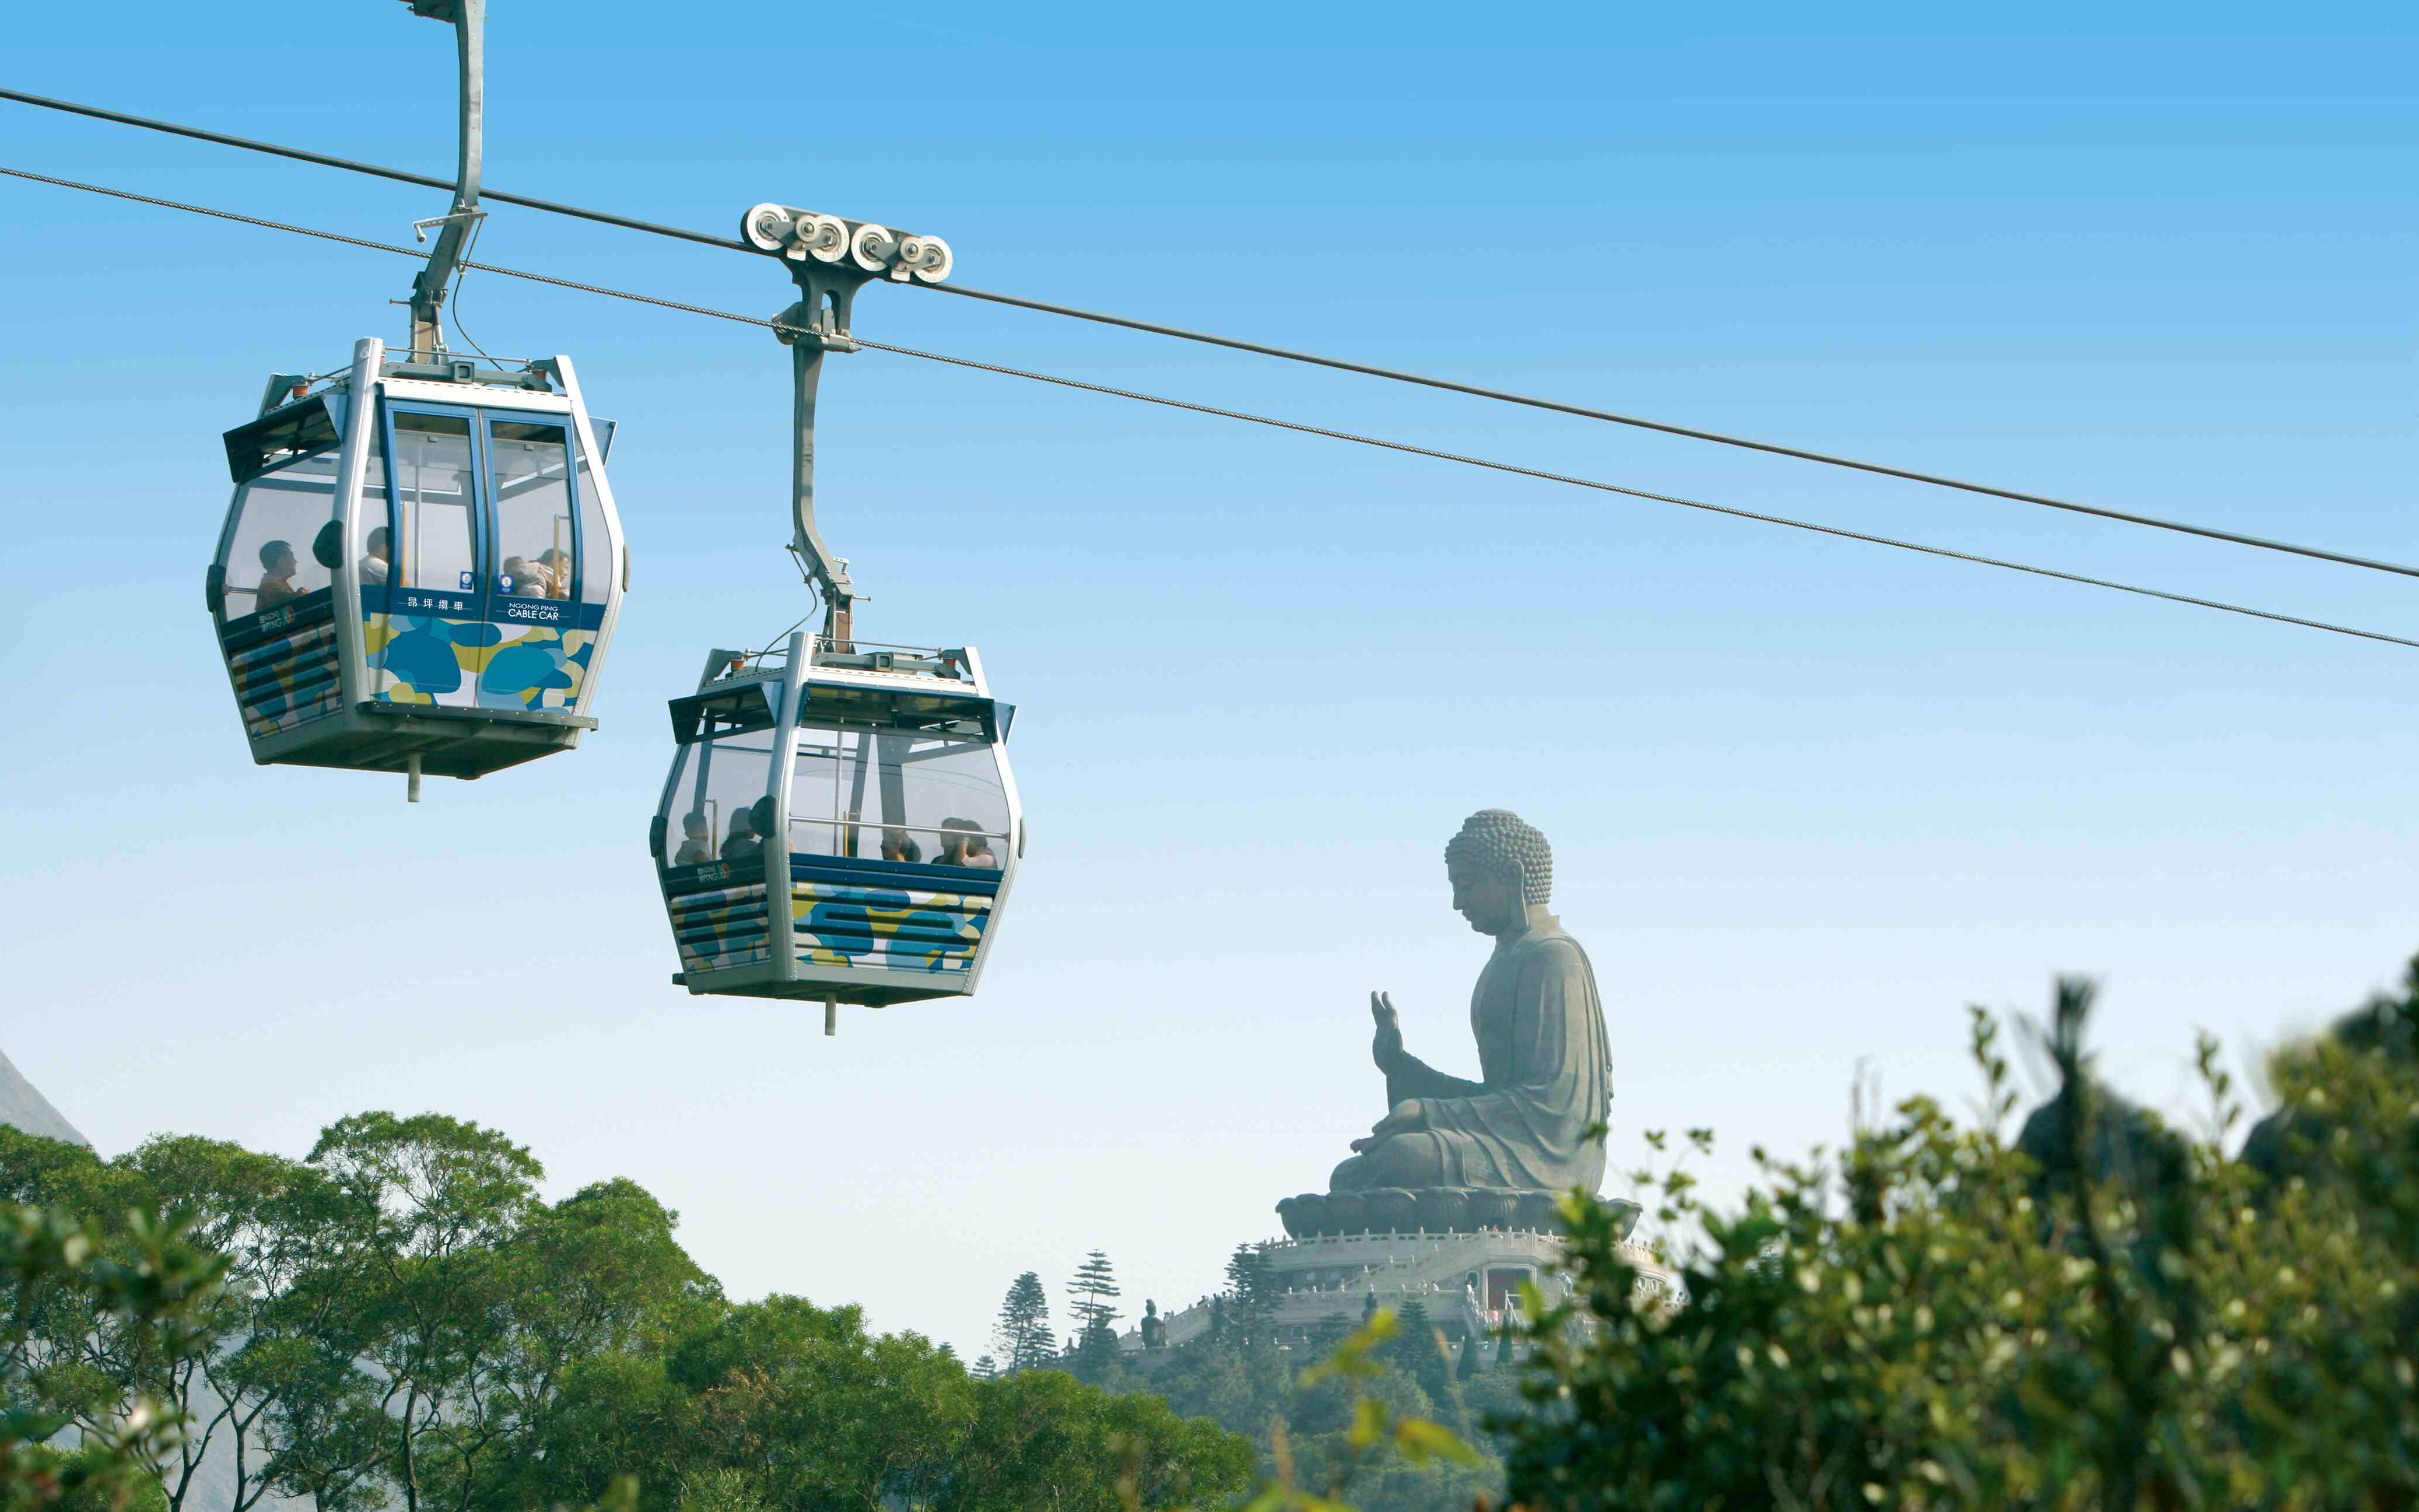 Ngong Ping Cable Car Experience